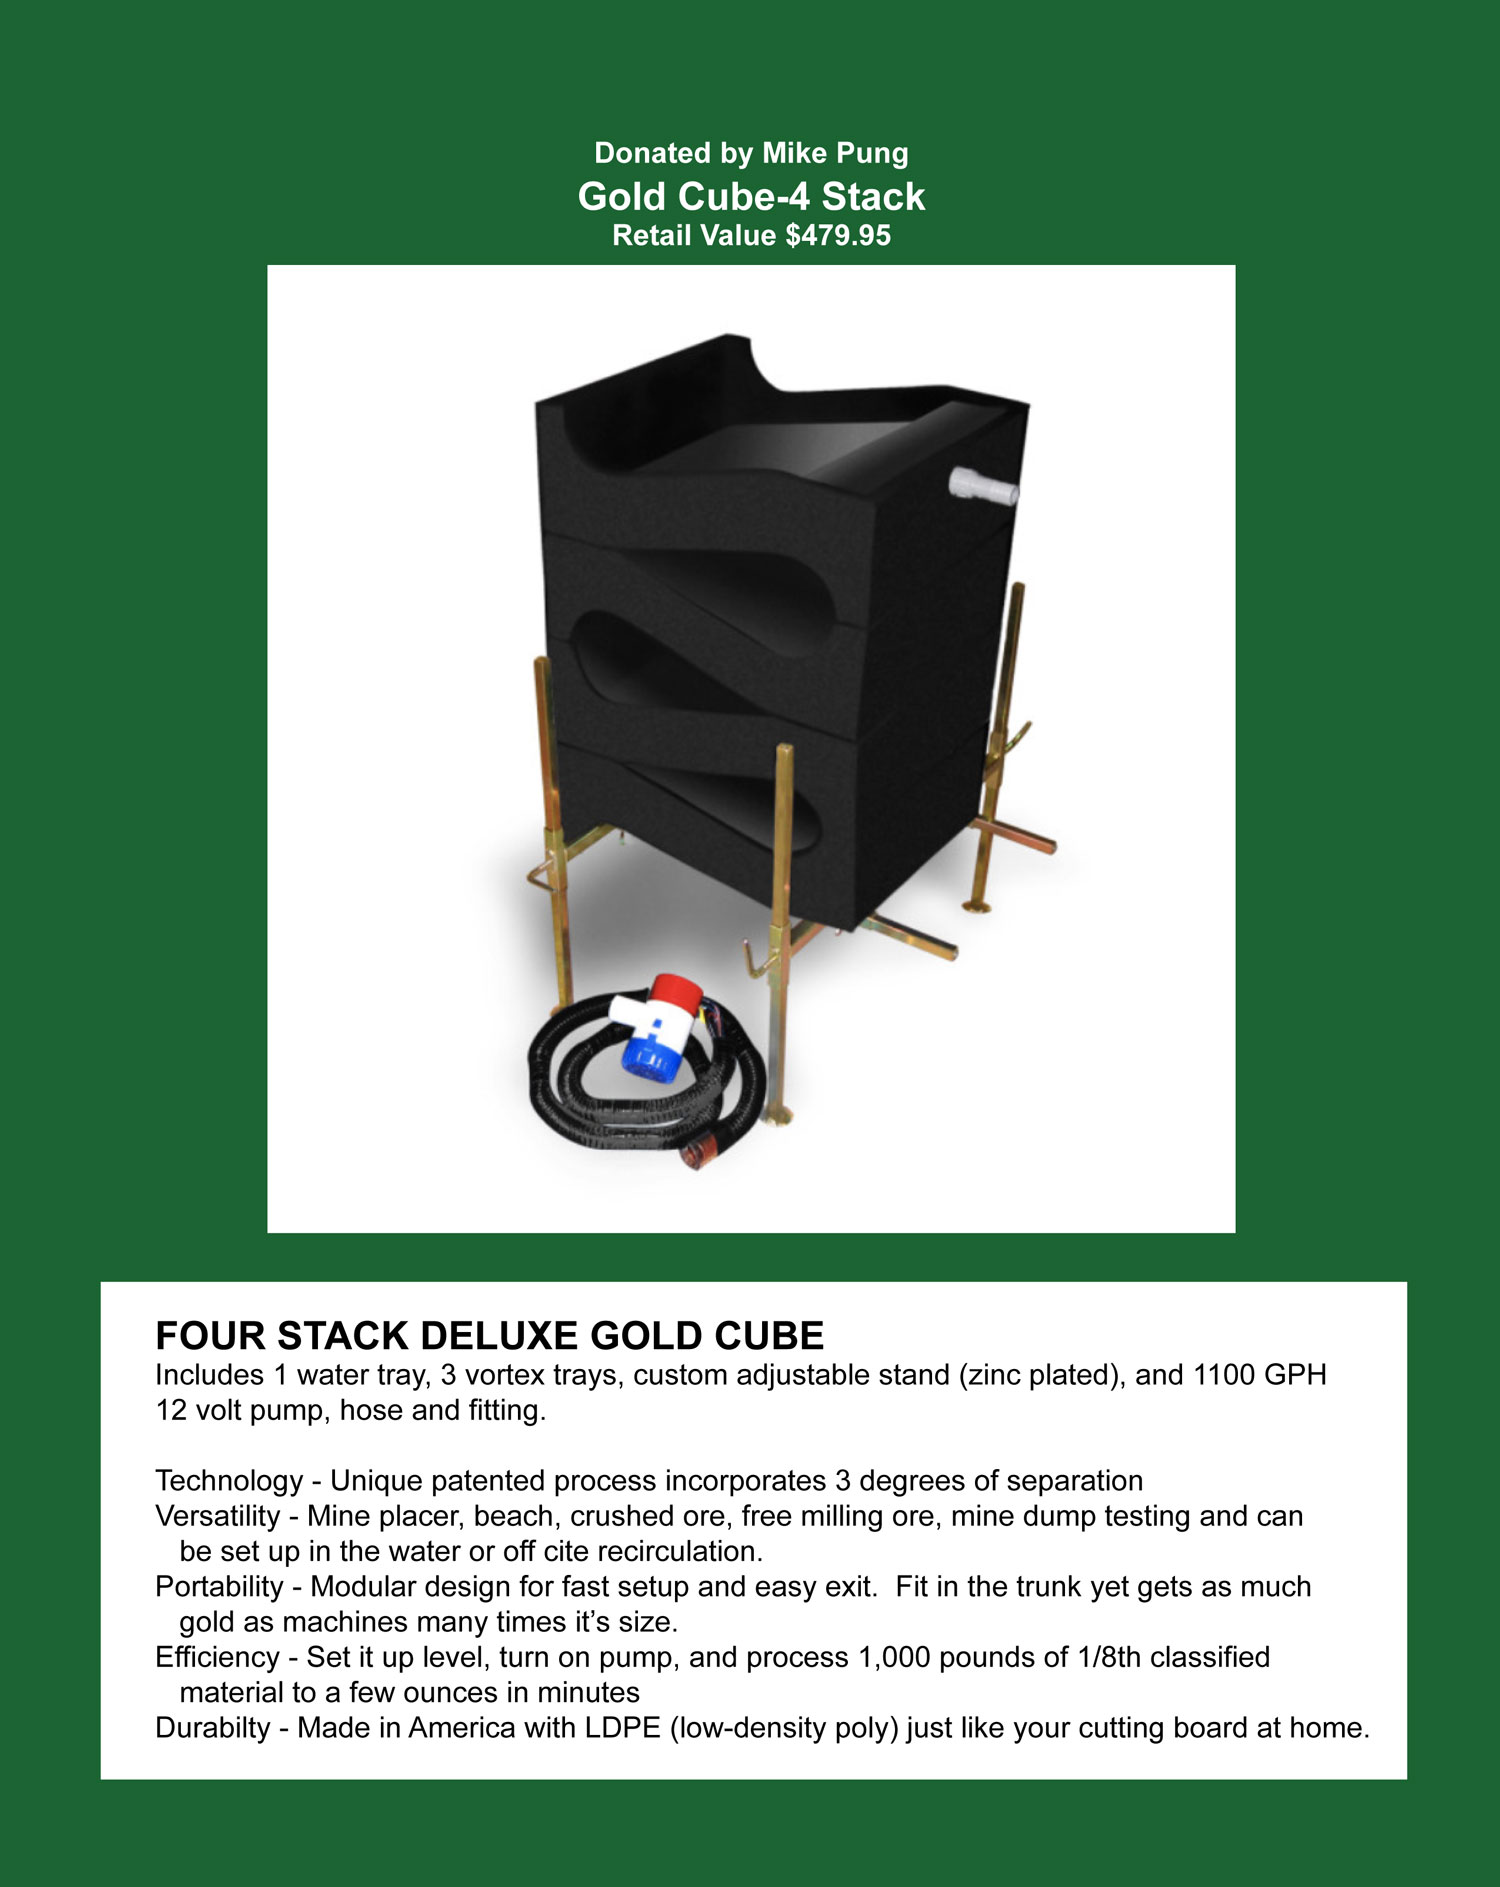 Gold Cube - Four Stack Deluxe